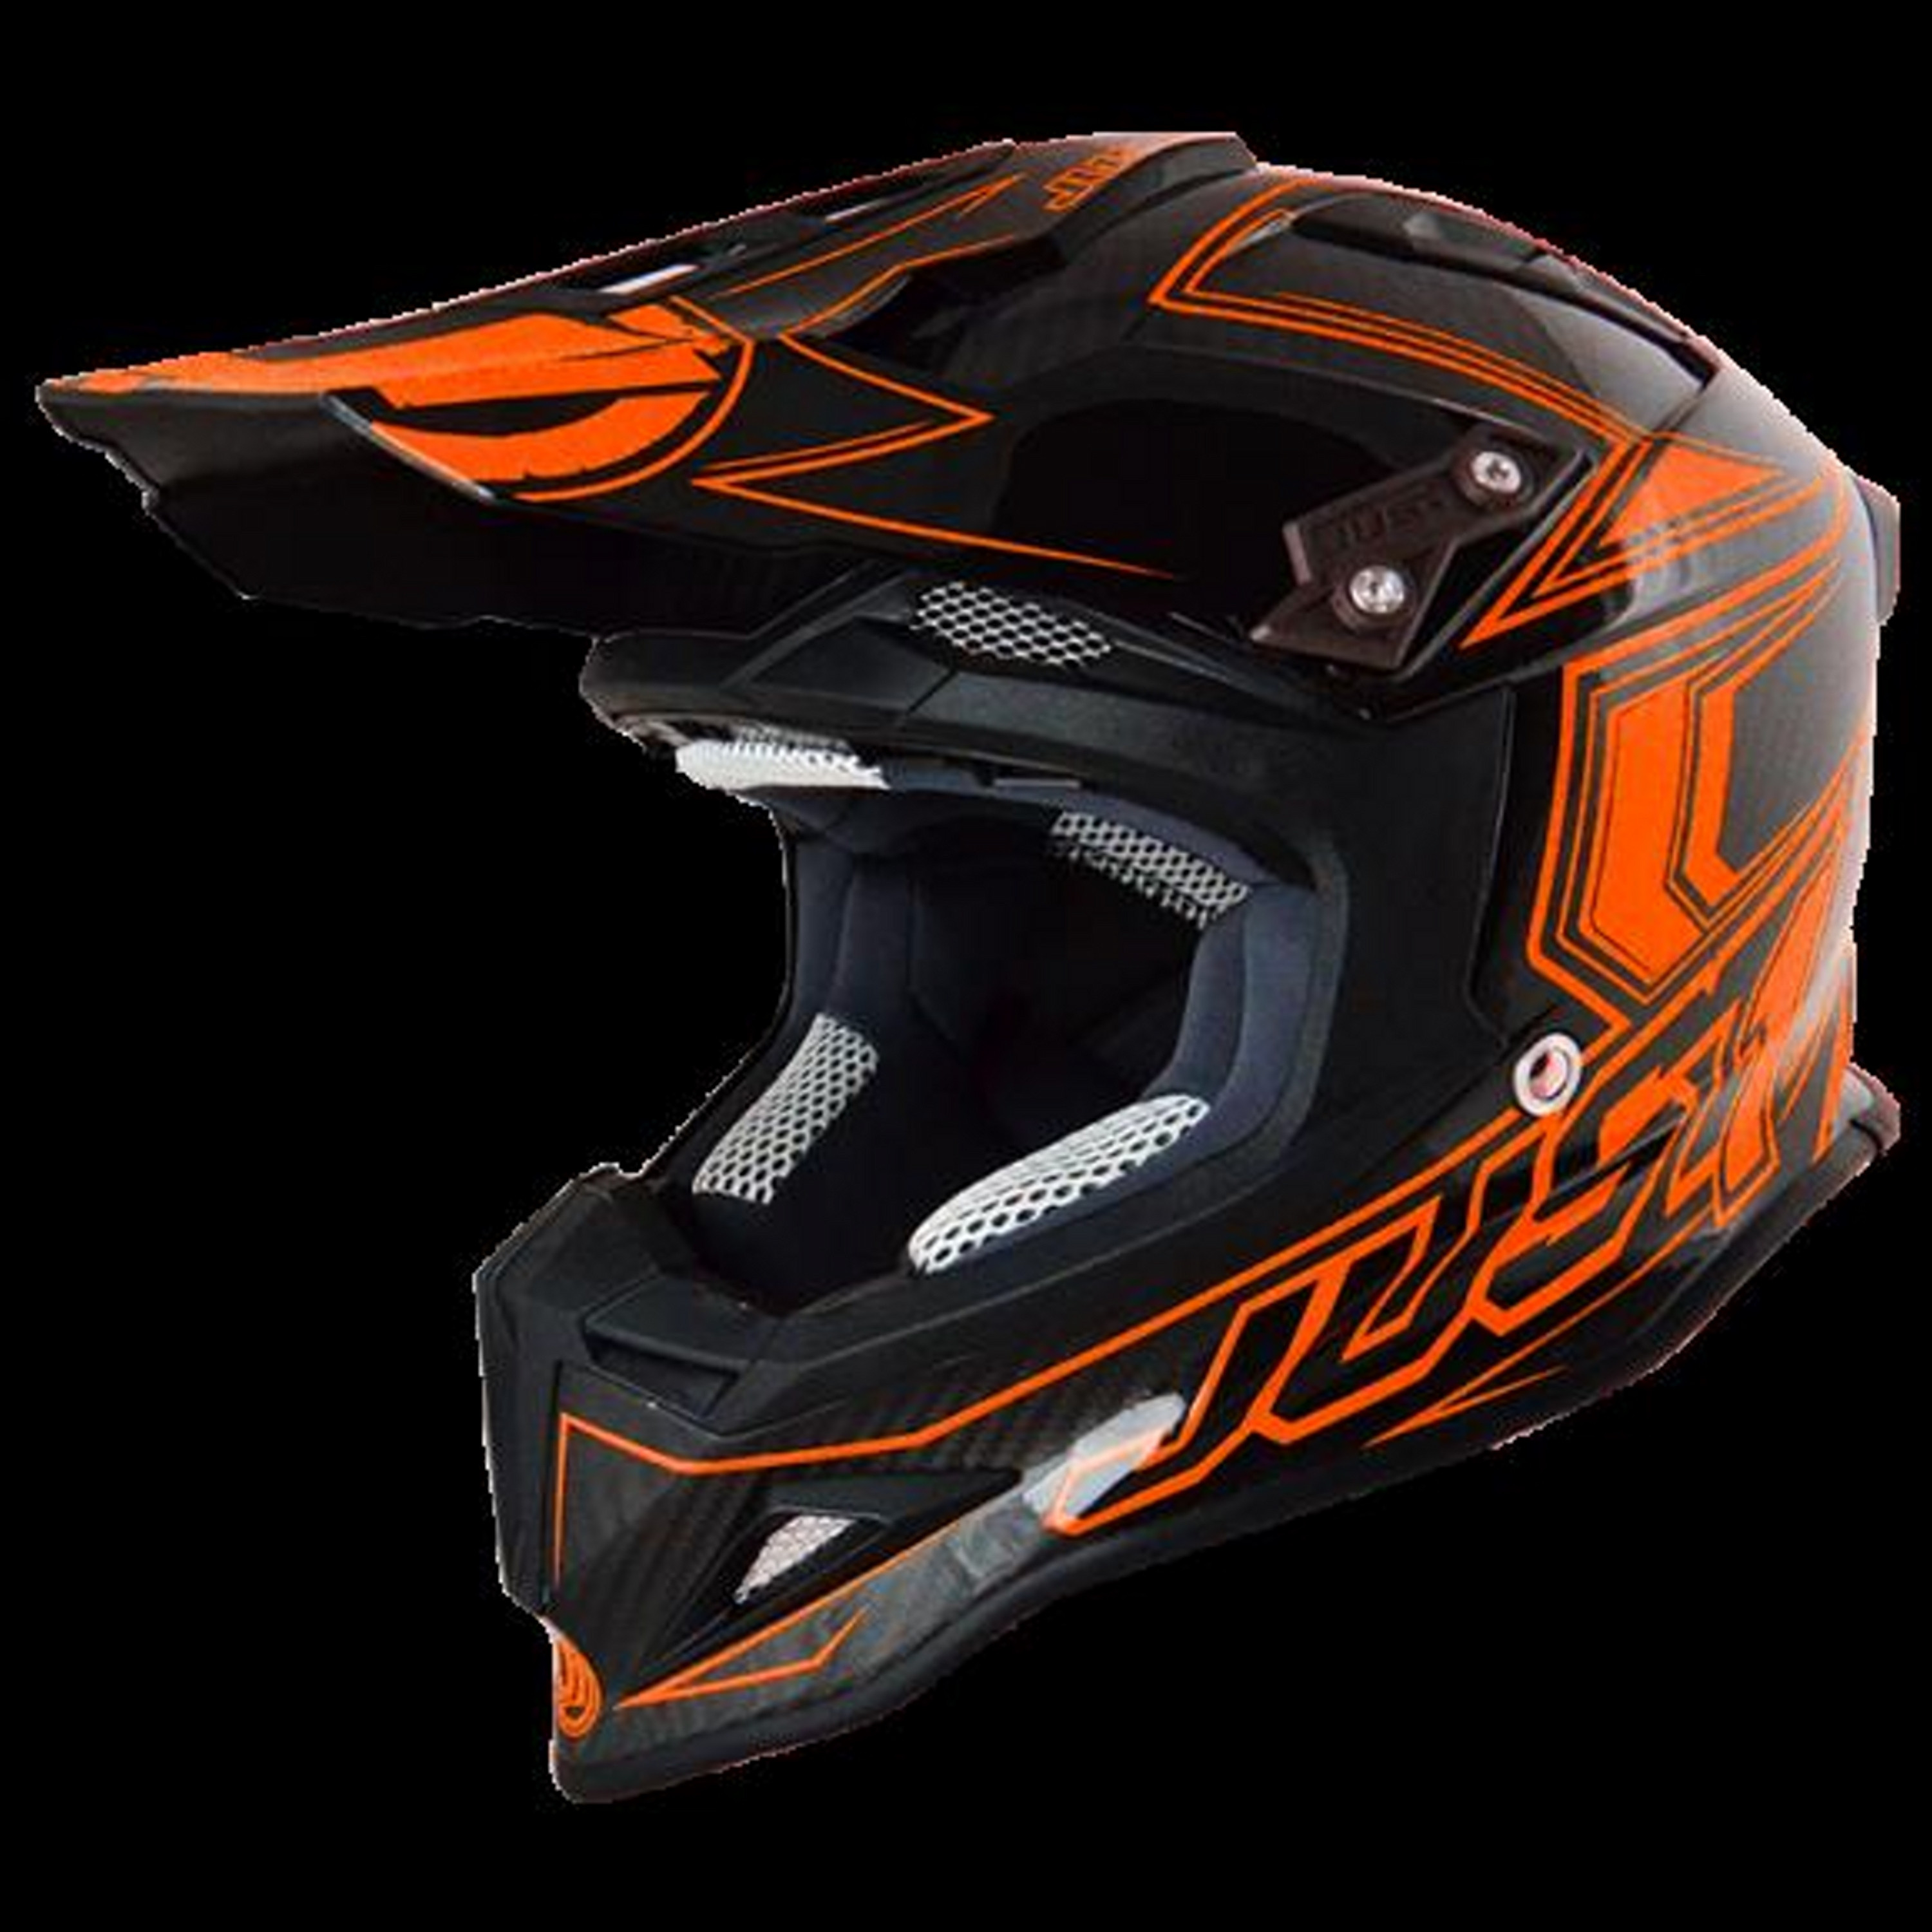 HELMET JUST1 J12 | CARBON FLUO OR | SIZE XS